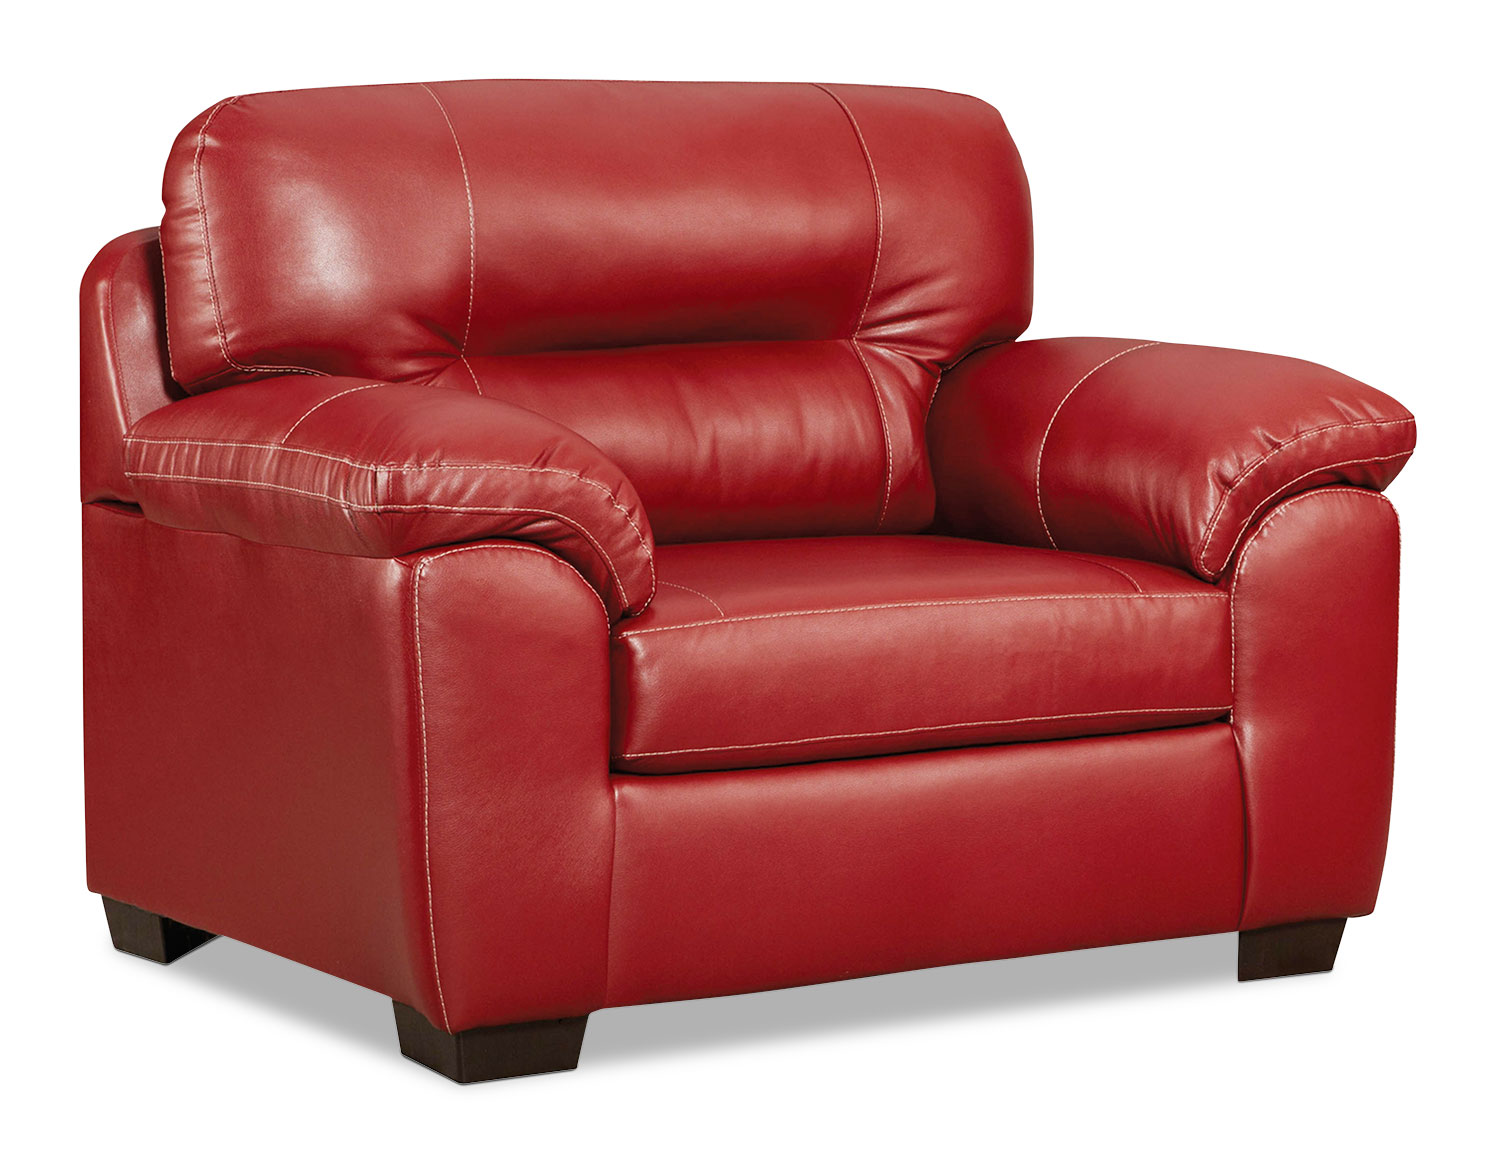 Rigley chair red levin furniture for Levin furniture living room chairs